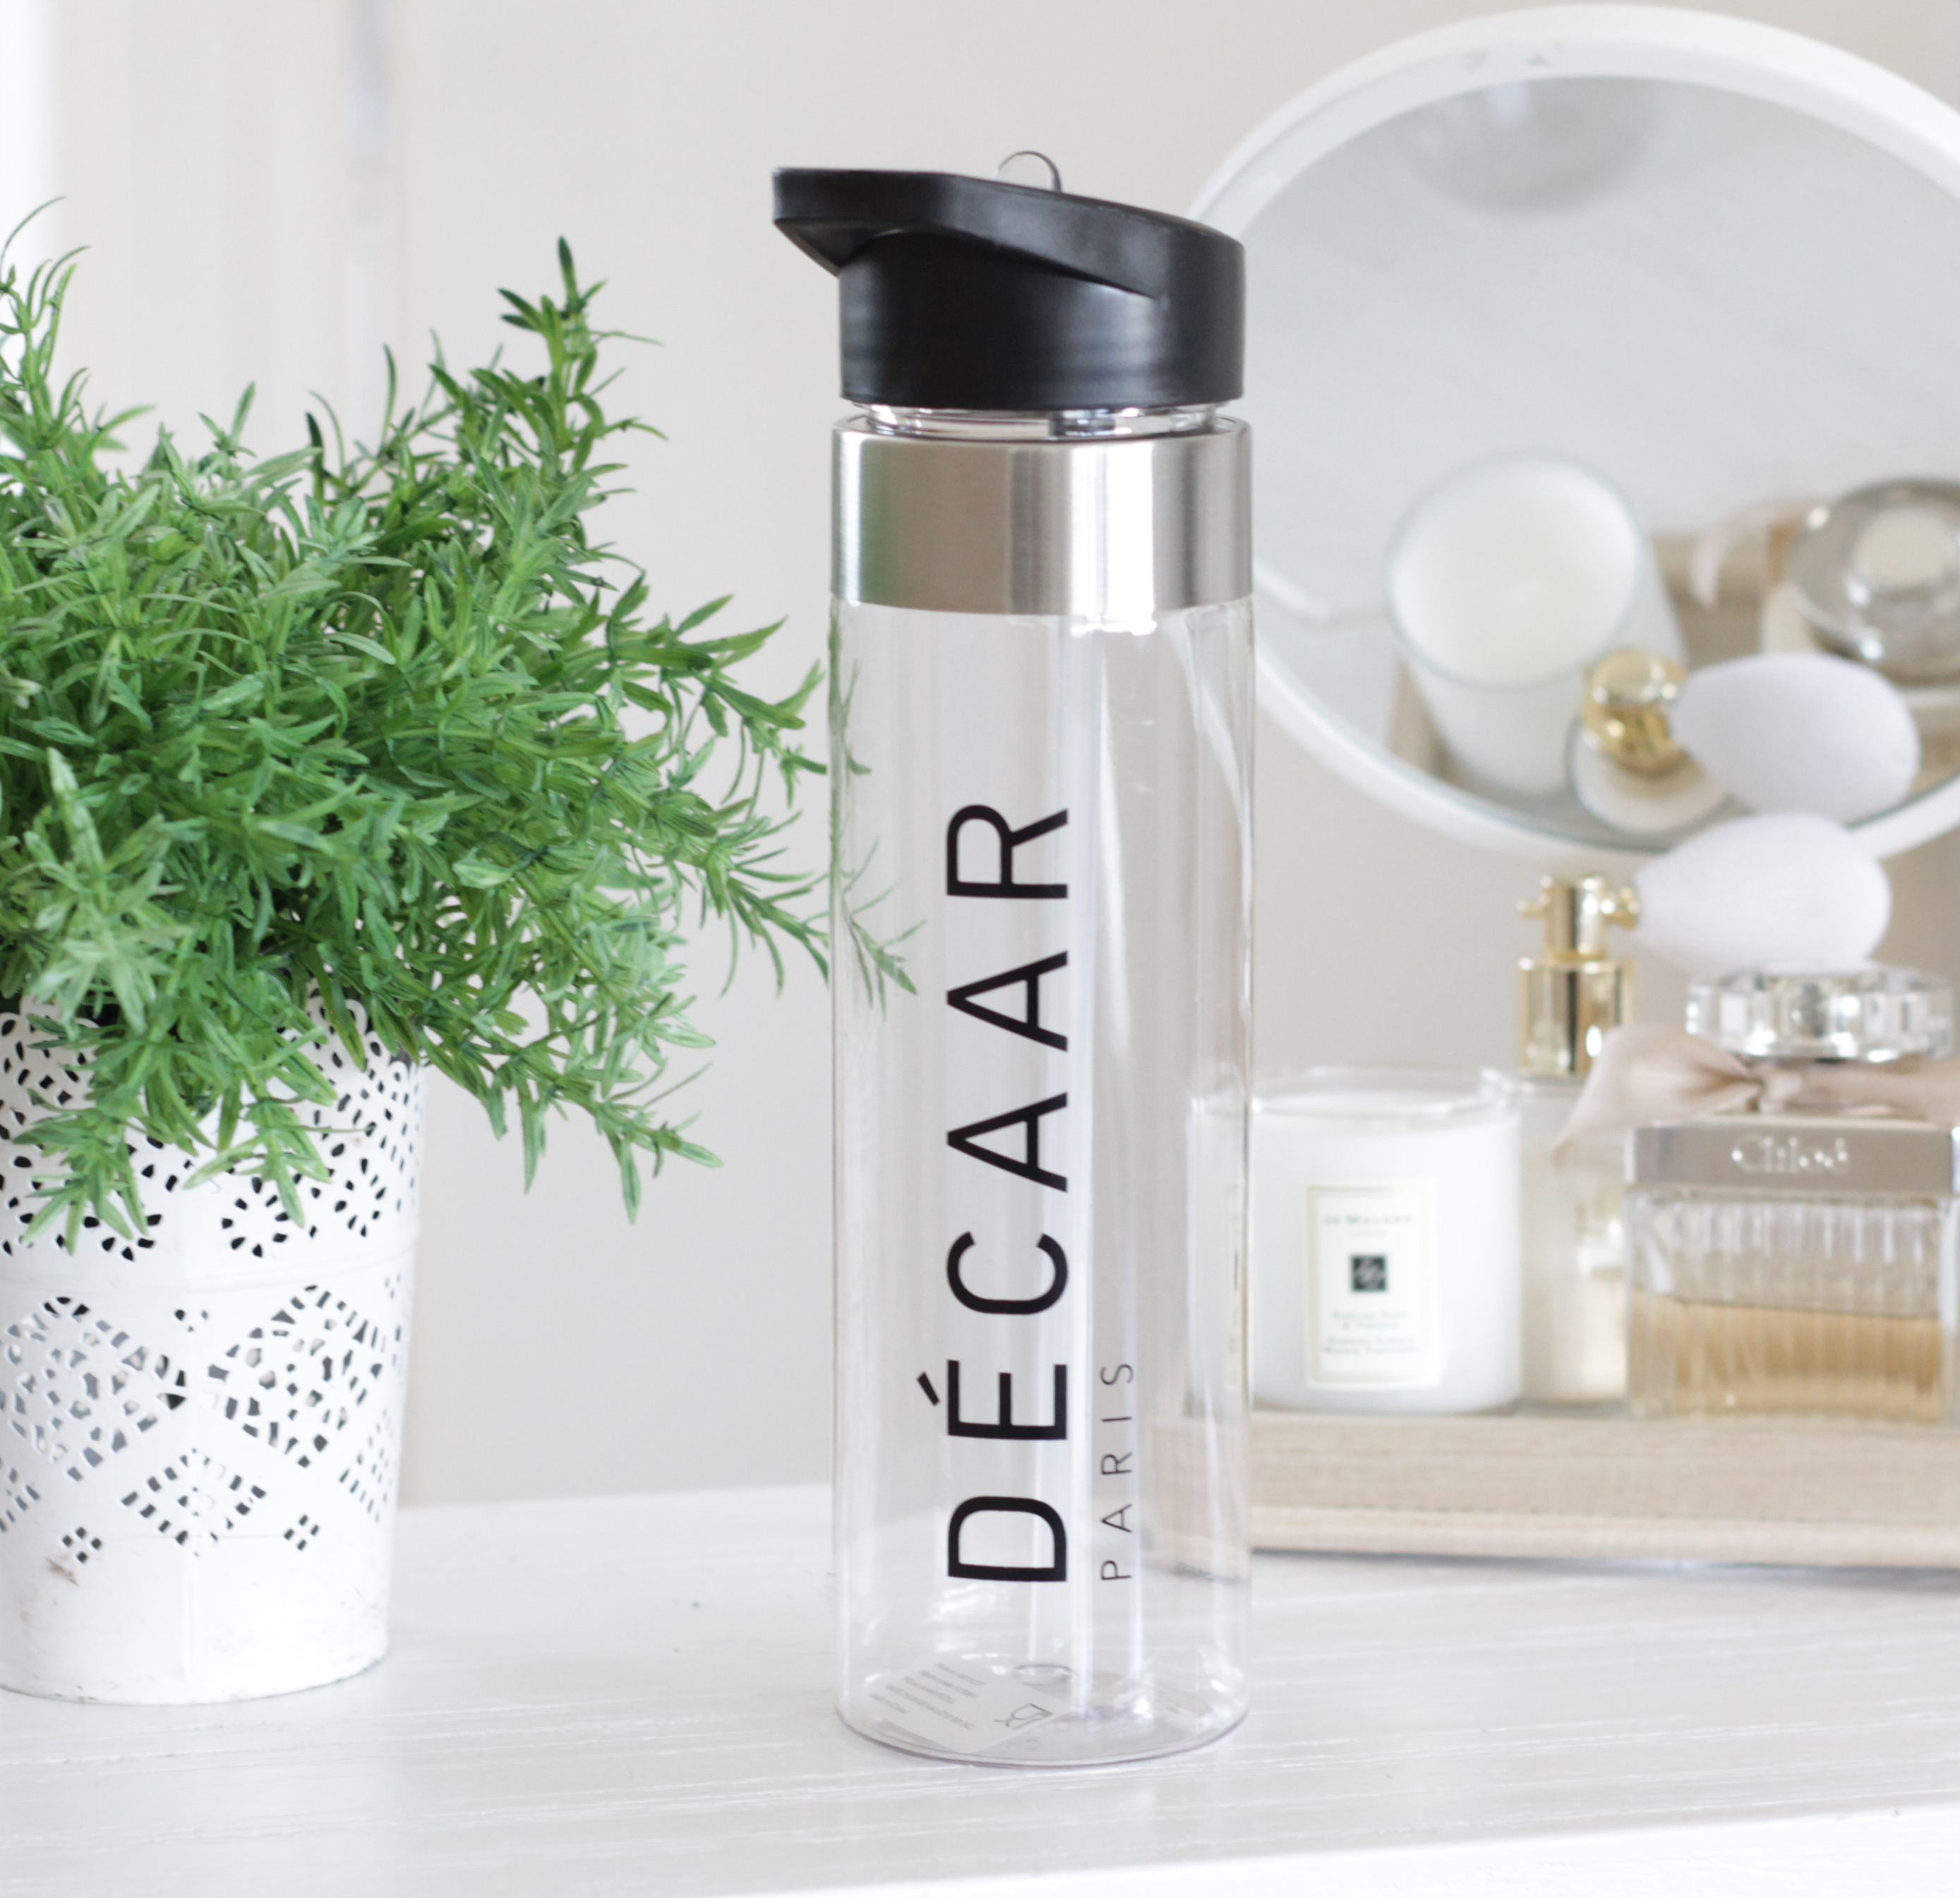 Décaar Foam Cleanser & Serum